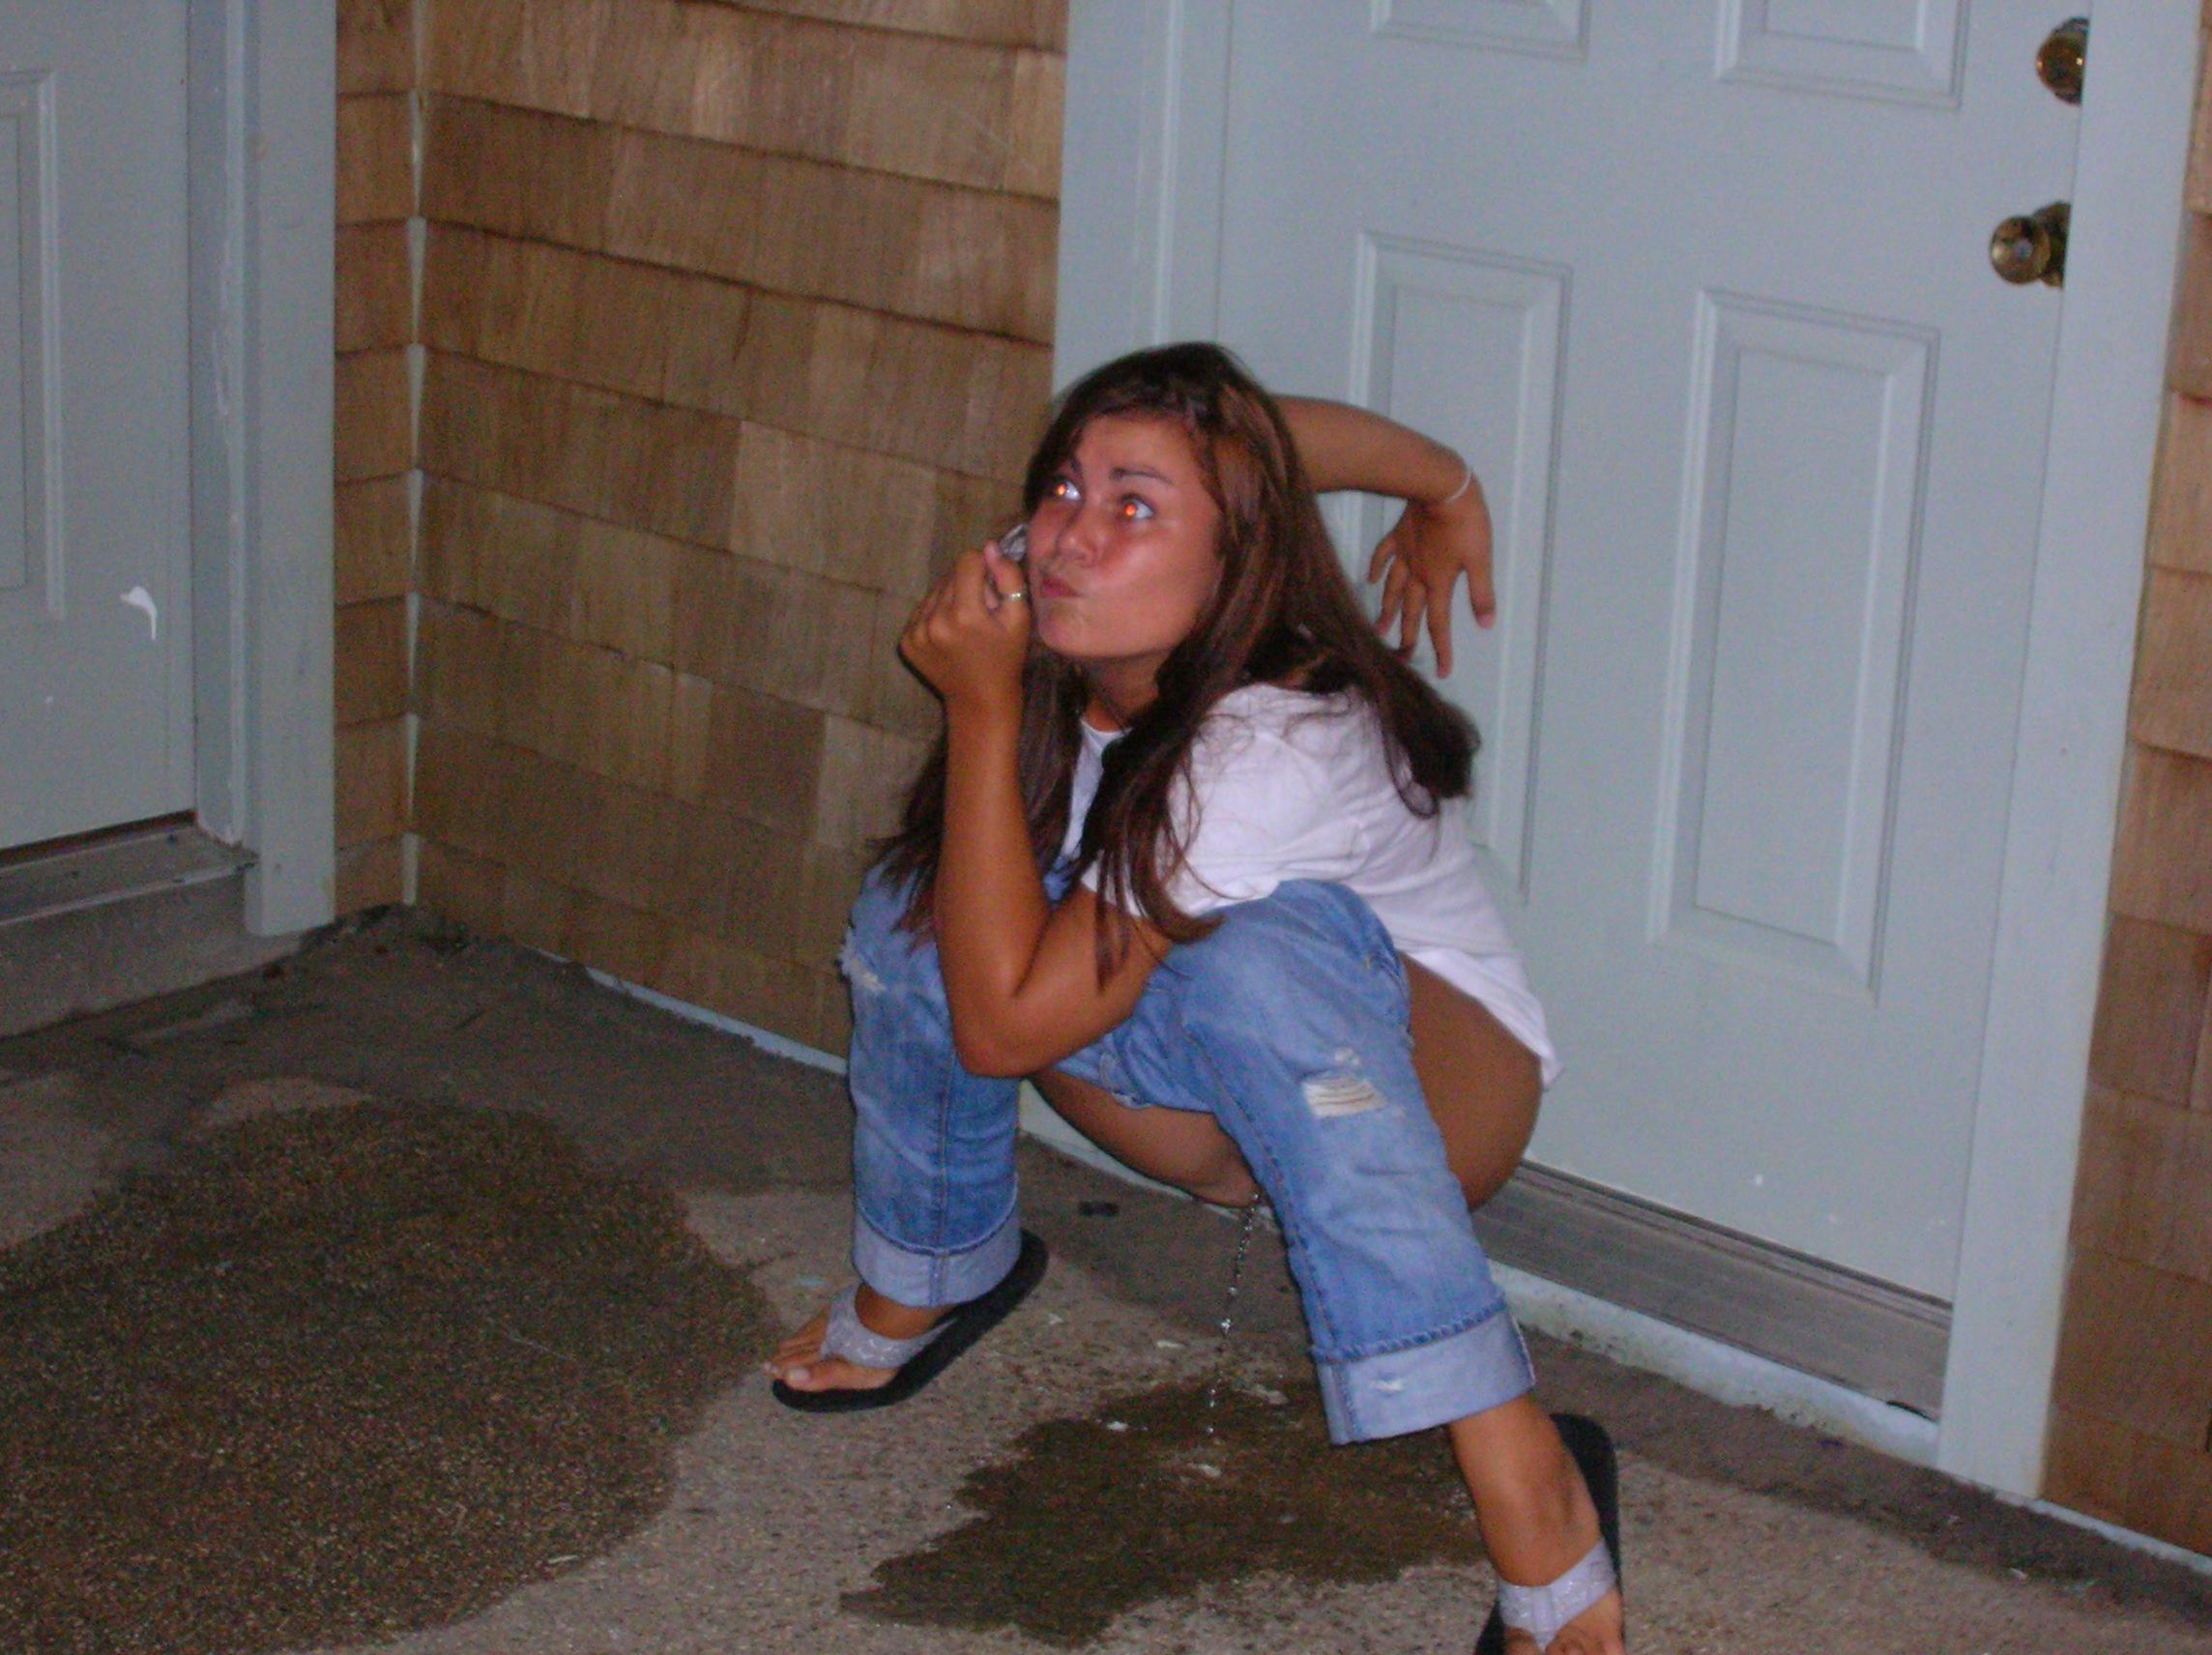 Girl Caught Peeing Pic